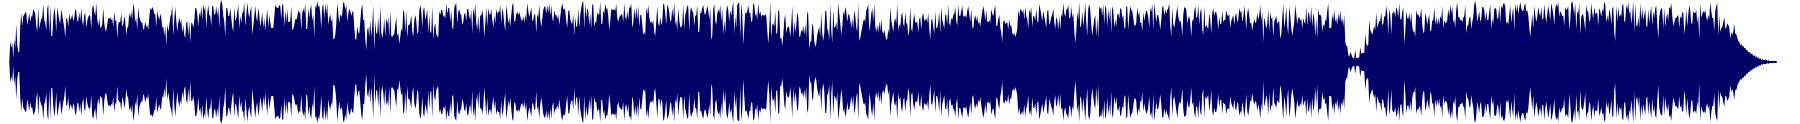 waveform of track #70834